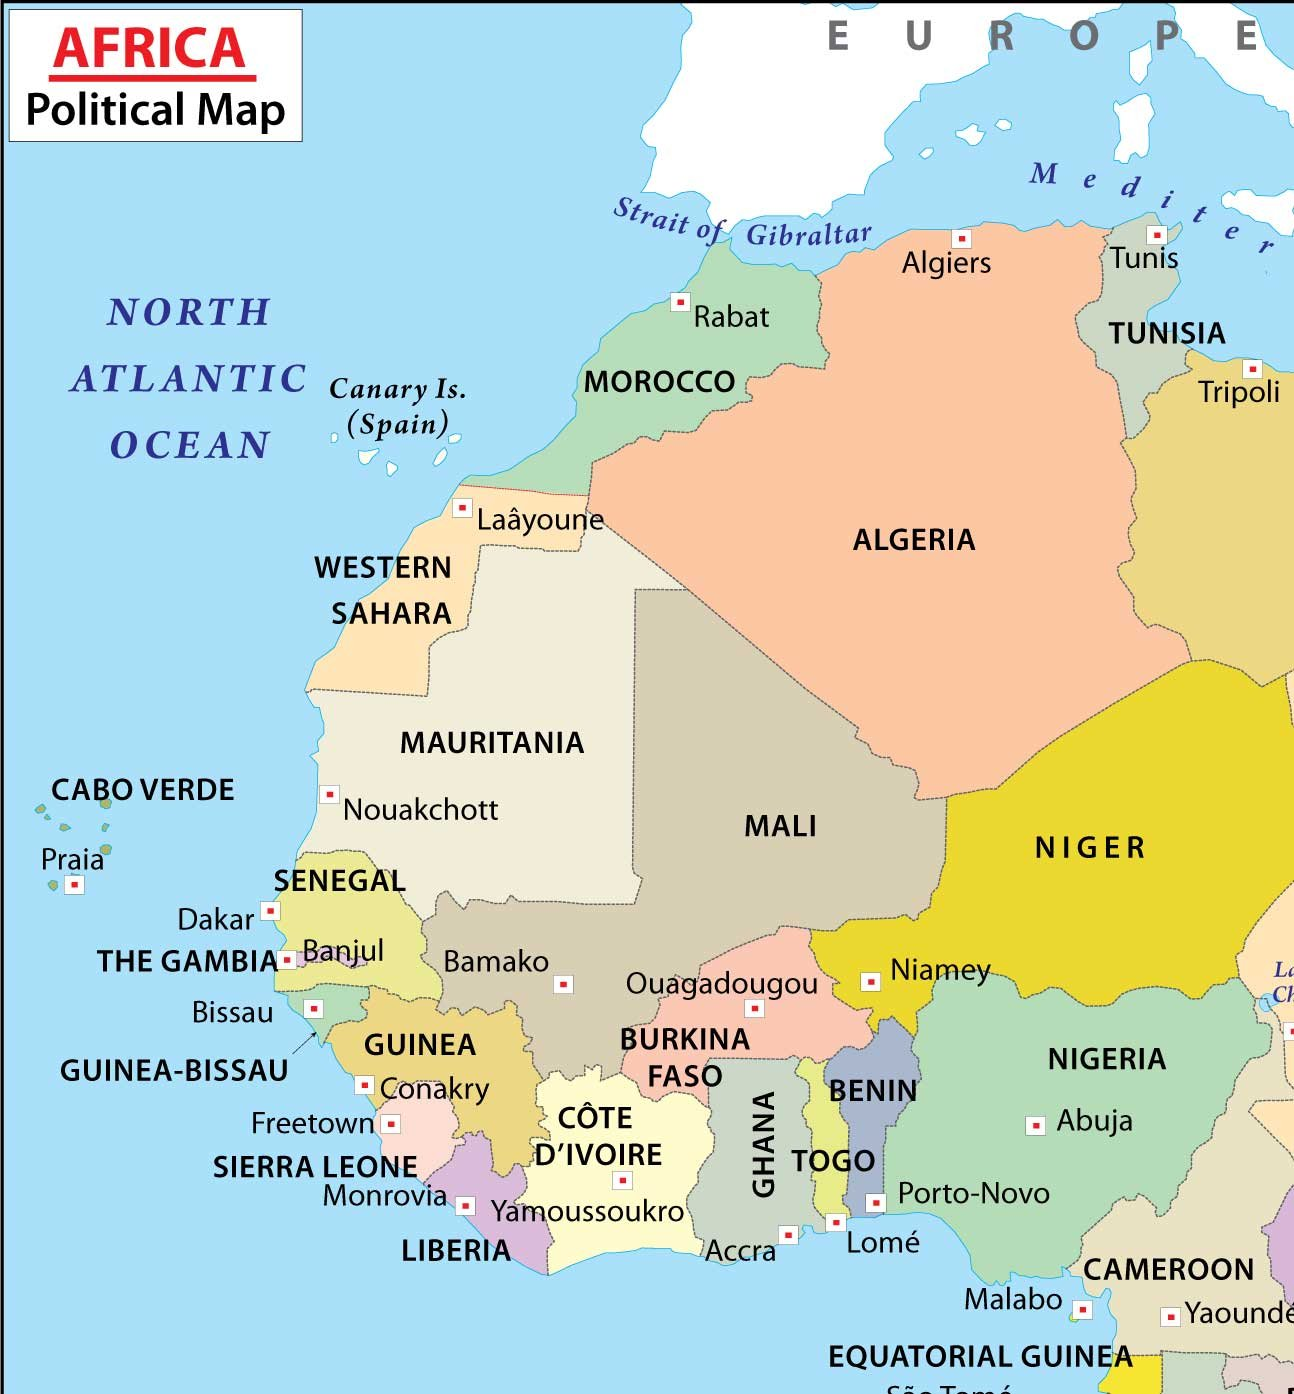 Amazoncom Africa Political Map 36 W x 388 H Office Products